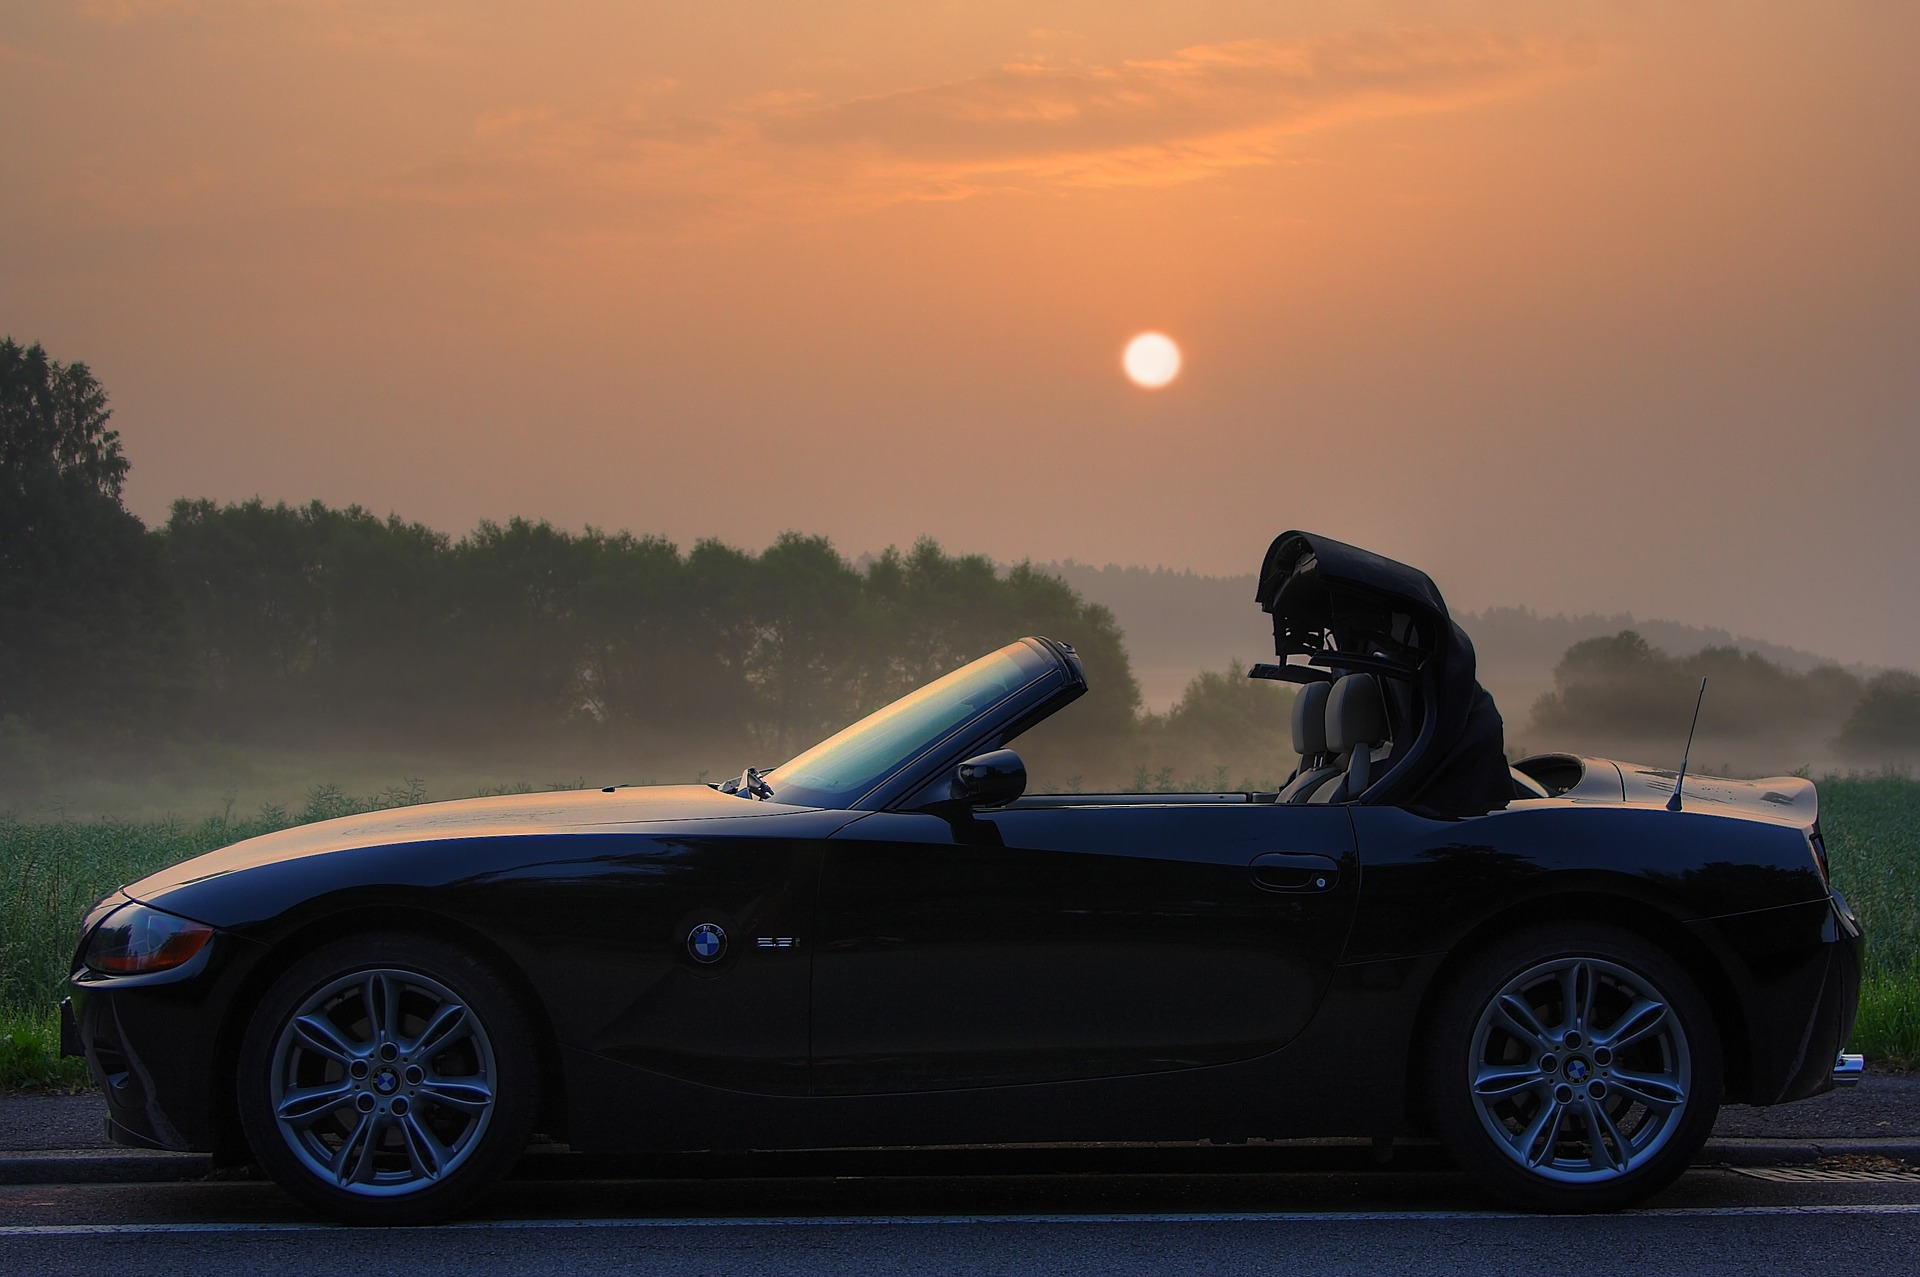 Convertible BMW at Sunset | Kids Car Donations